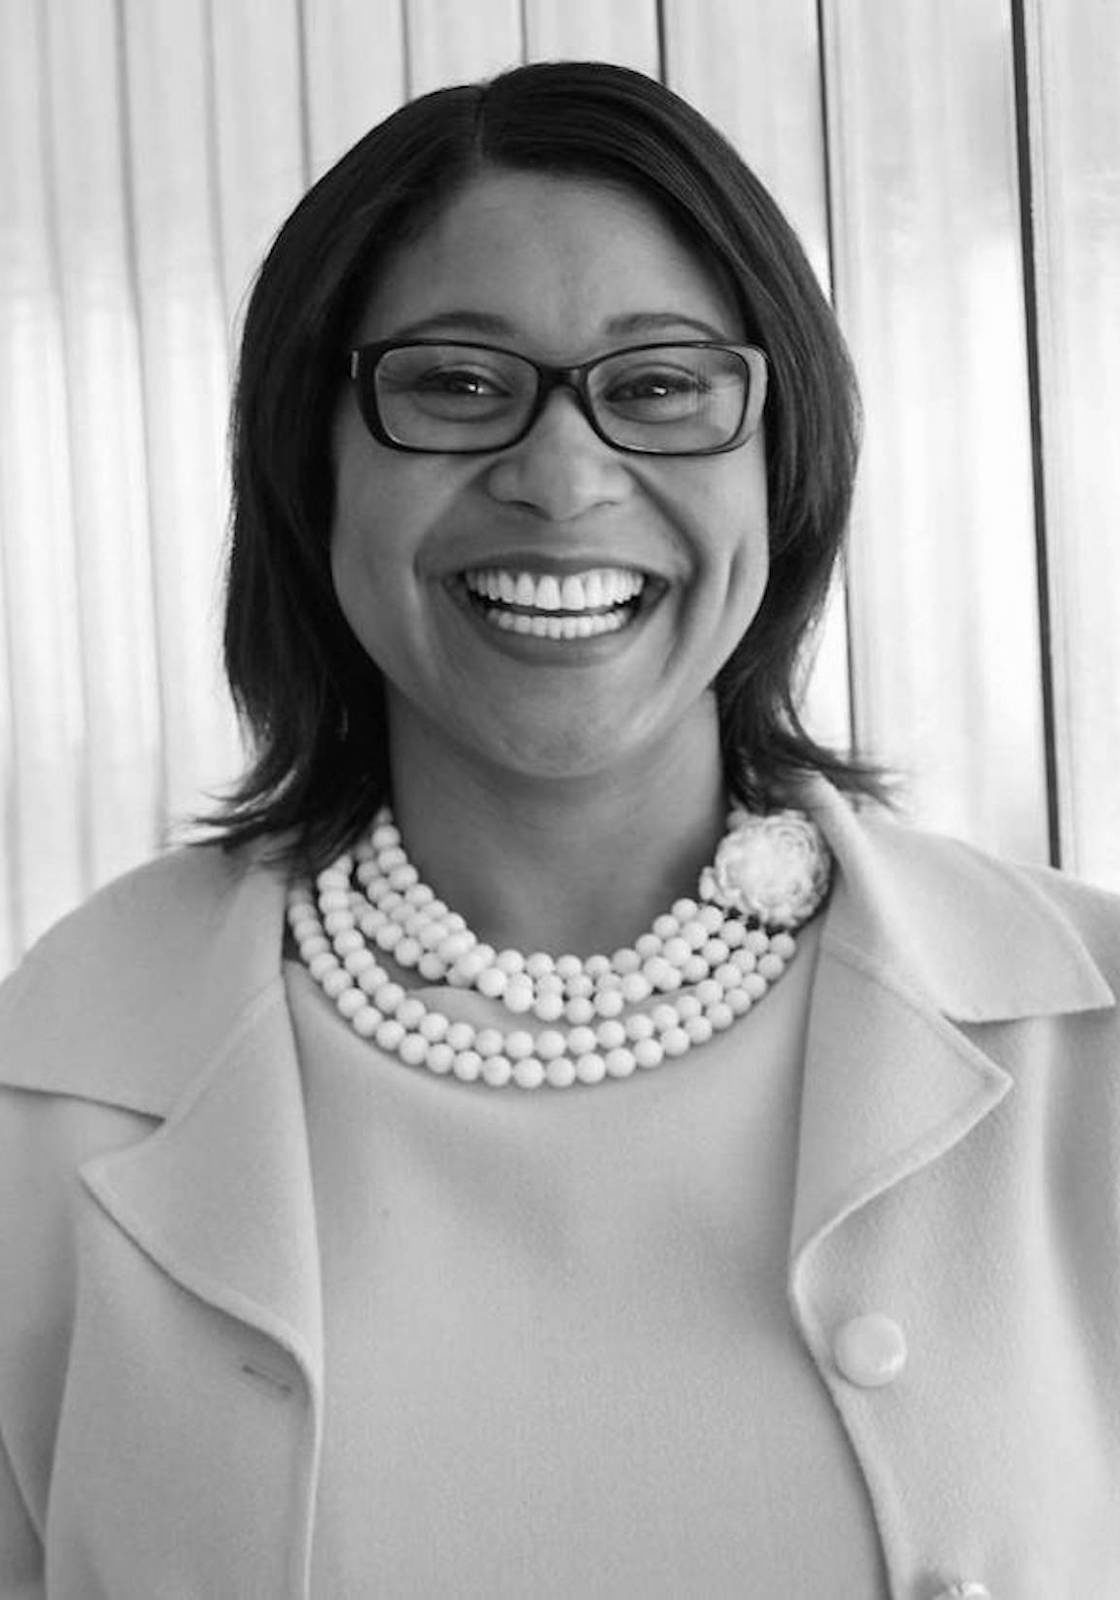 London Breed, Willoughby Avenue, The Five Fifths, KOLUMN Magazine, KOLUMN, African American Politics, Black in Politics